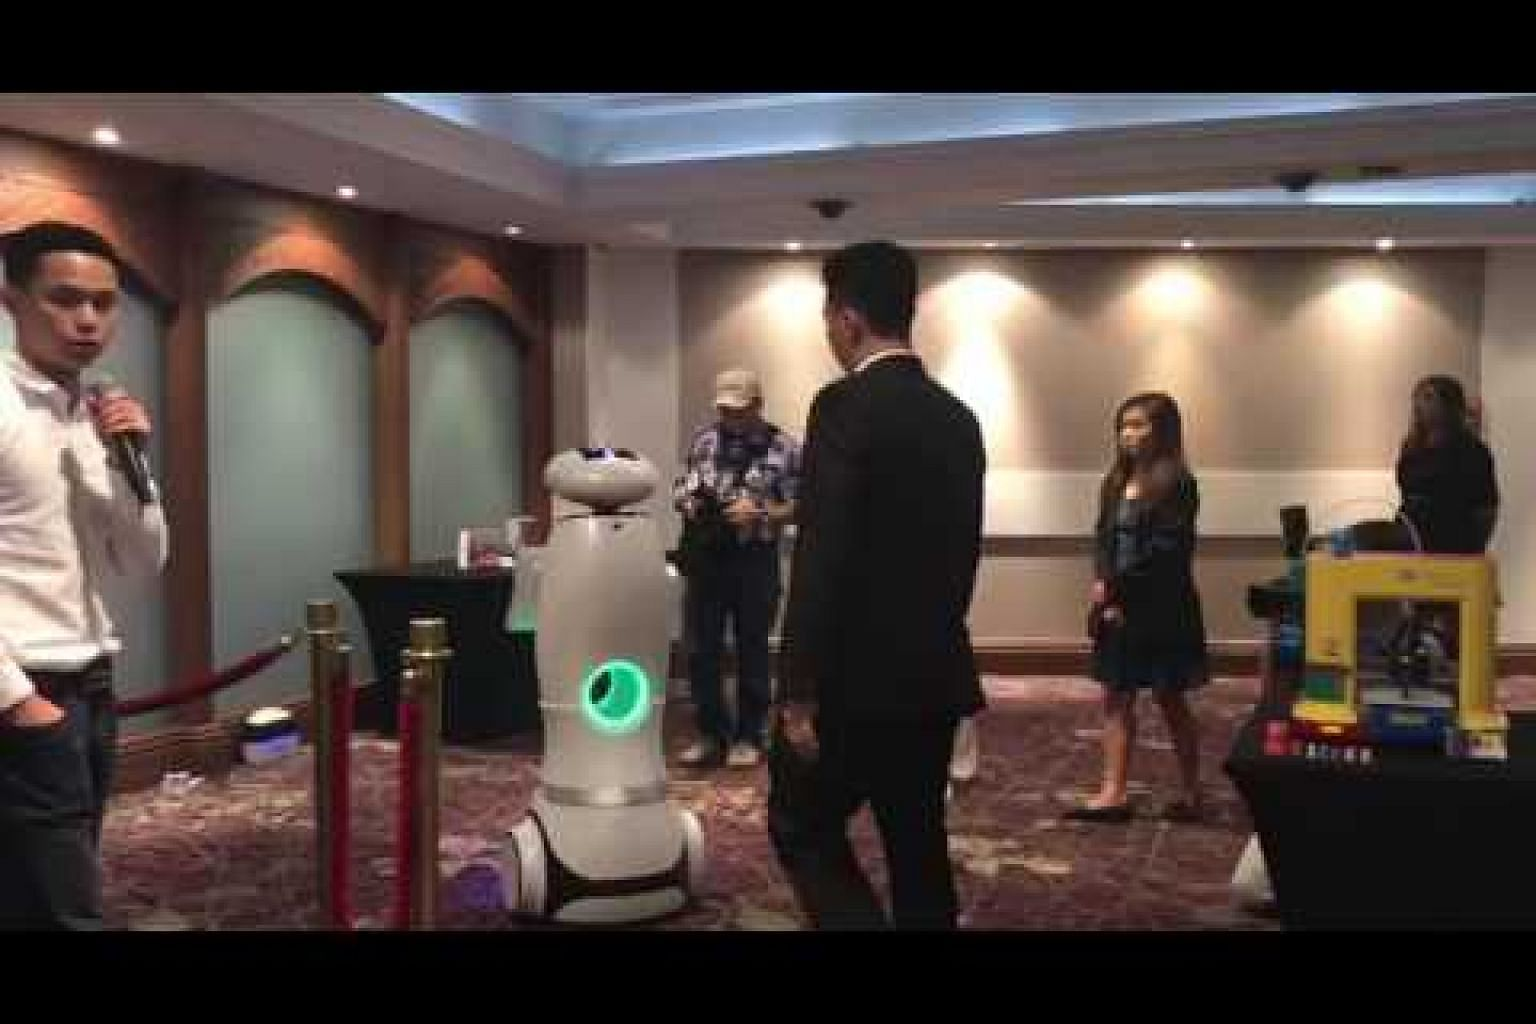 Live demonstration of the XYZrobot